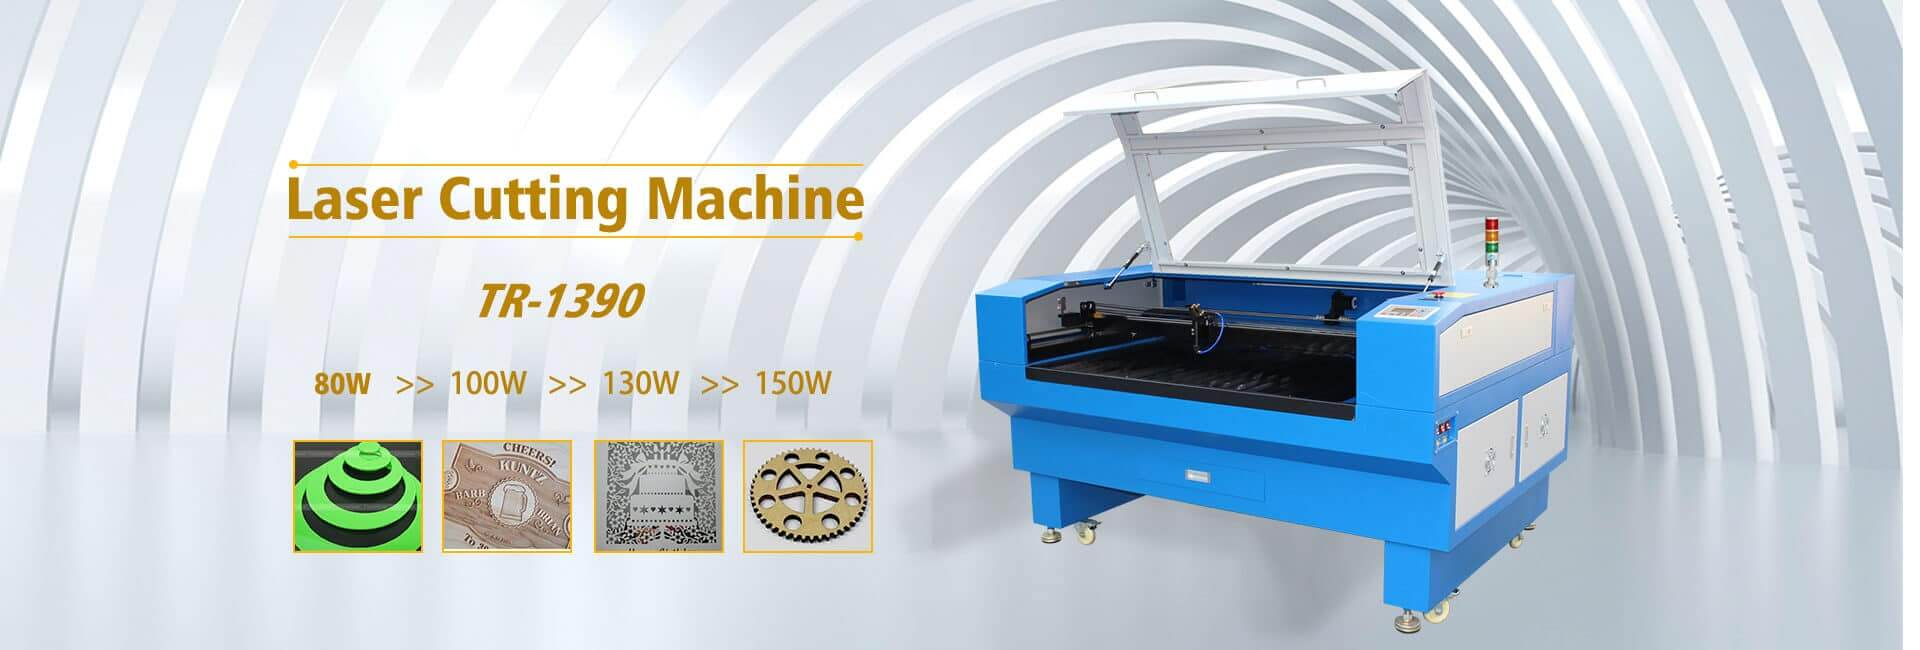 laser cutting machine 1390 high quality